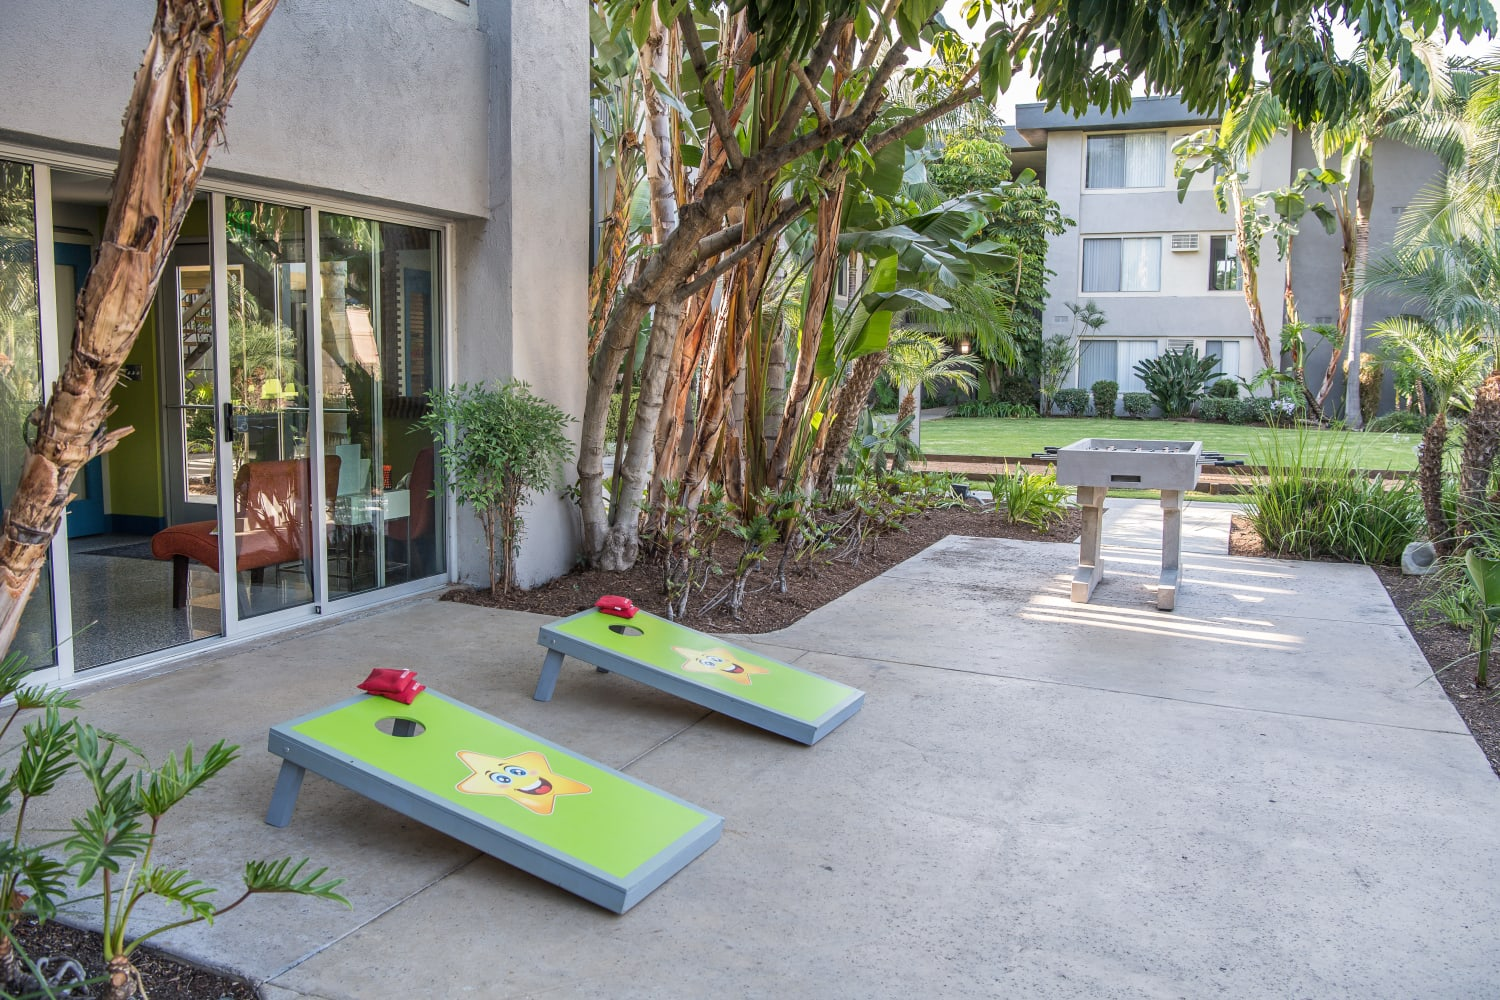 UCE Apartment Homes in Fullerton, California, offers a large variety of outdoor games